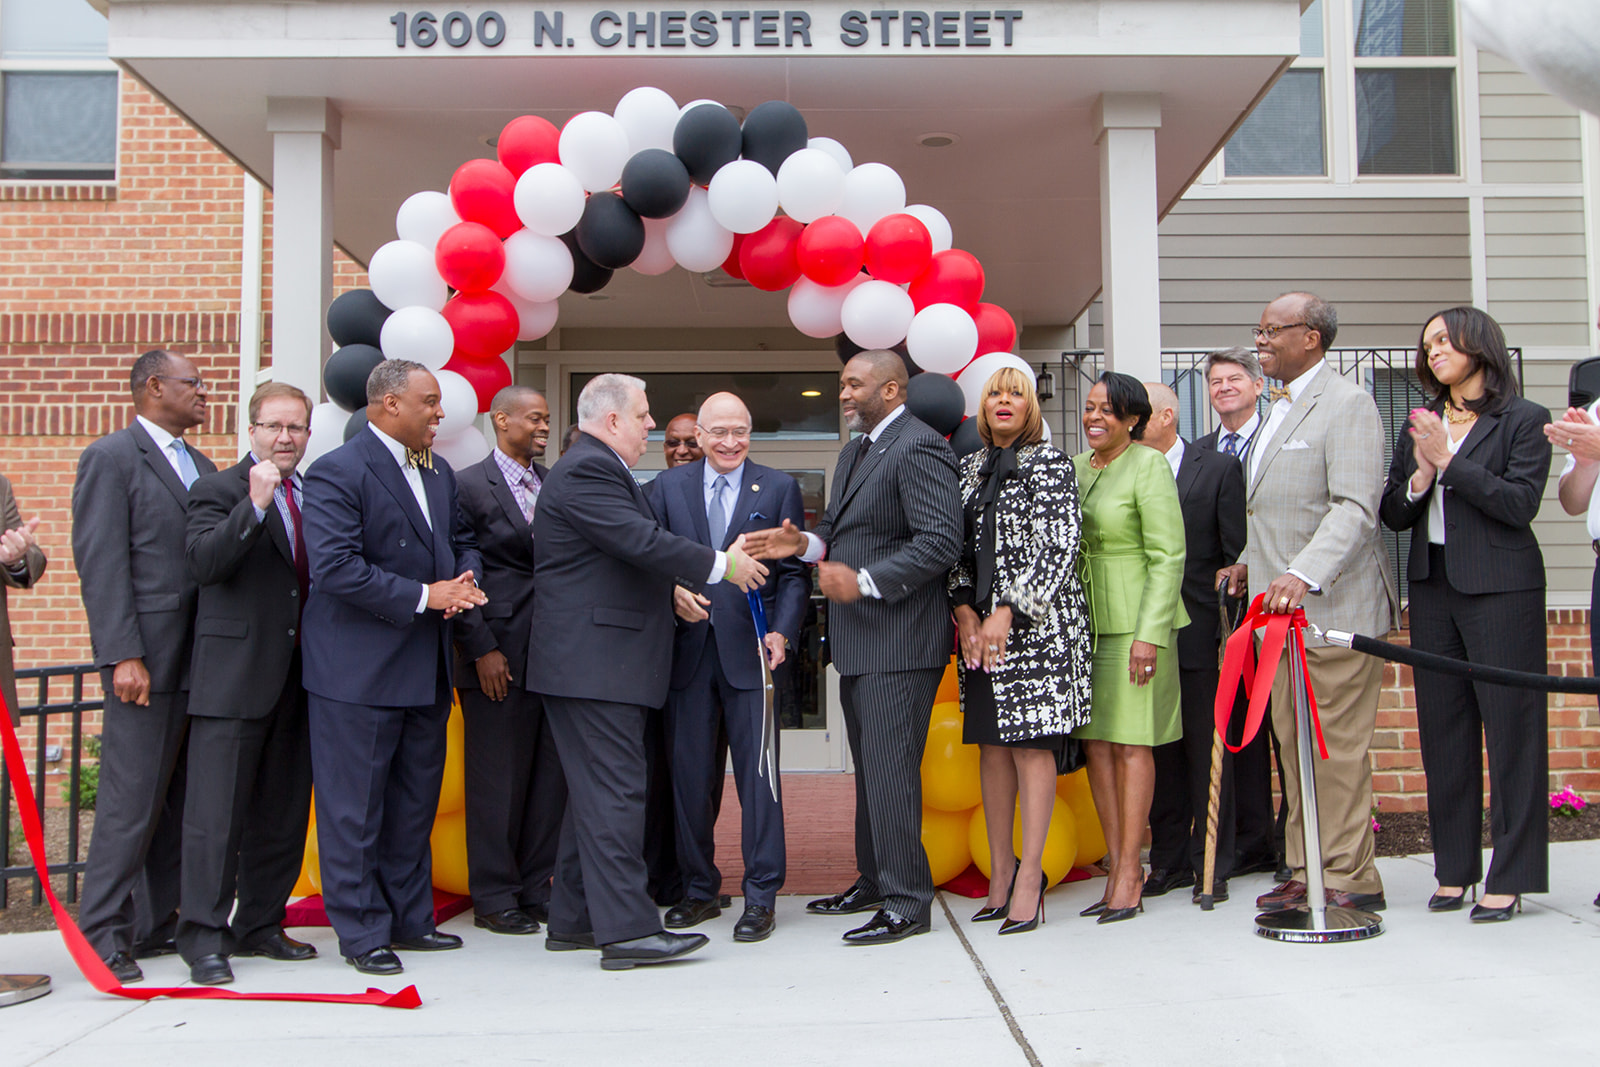 """Maryland Governor Larry S. Hogan joined Pastor Donte' and First Lady Danielle Hickman of Southern Baptist Church and Woda Senior Vice President Kevin V. Bell for the grand opening of the Mary Harvin Senior Center. Other elected officials included: City Council President Bernard C. """"Jack"""" Young, Comptroller Joan M. Pratt, Councilman Carl Stokes, Senator Nathaniel McFadden and States Attorney Marilyn Mosby."""